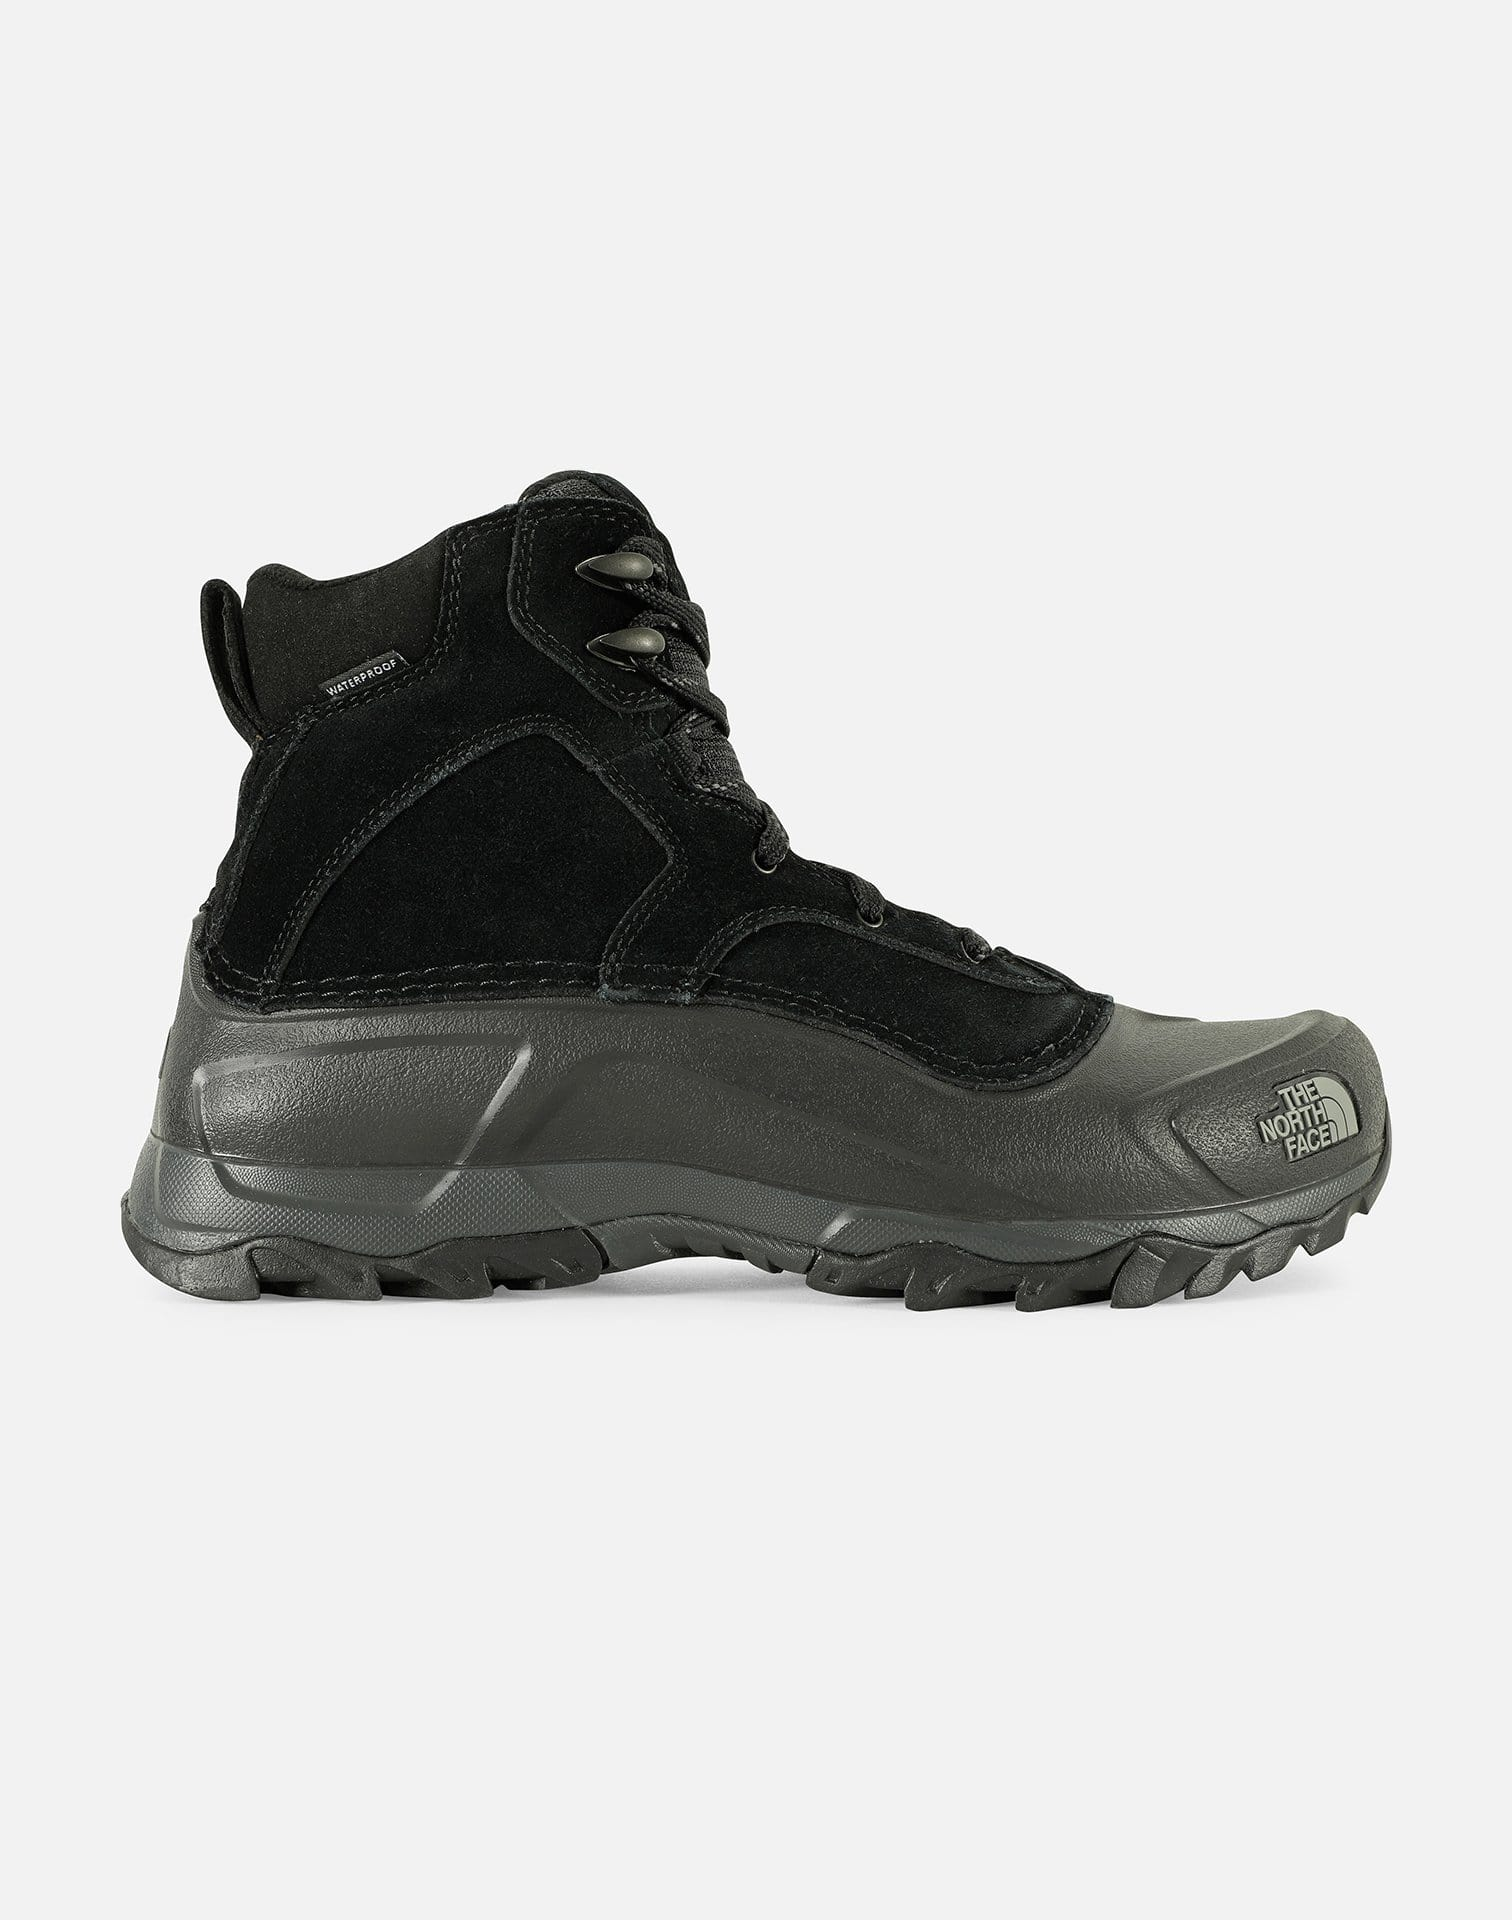 The North Face Men's Snowfuse Boots